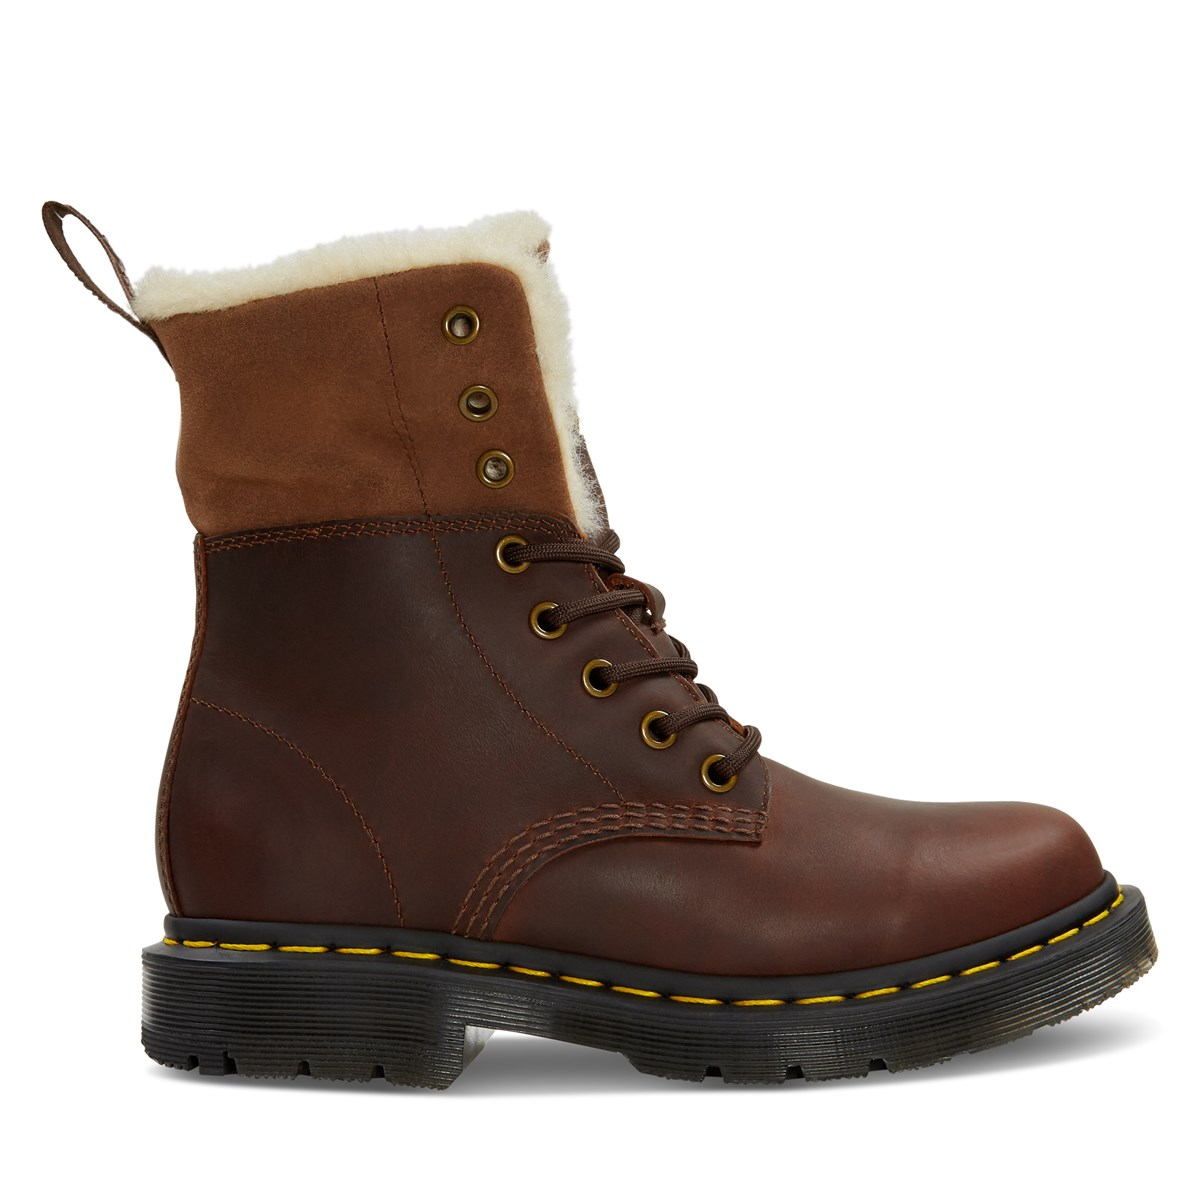 Women's 1460 Kolbert Boots in Brown